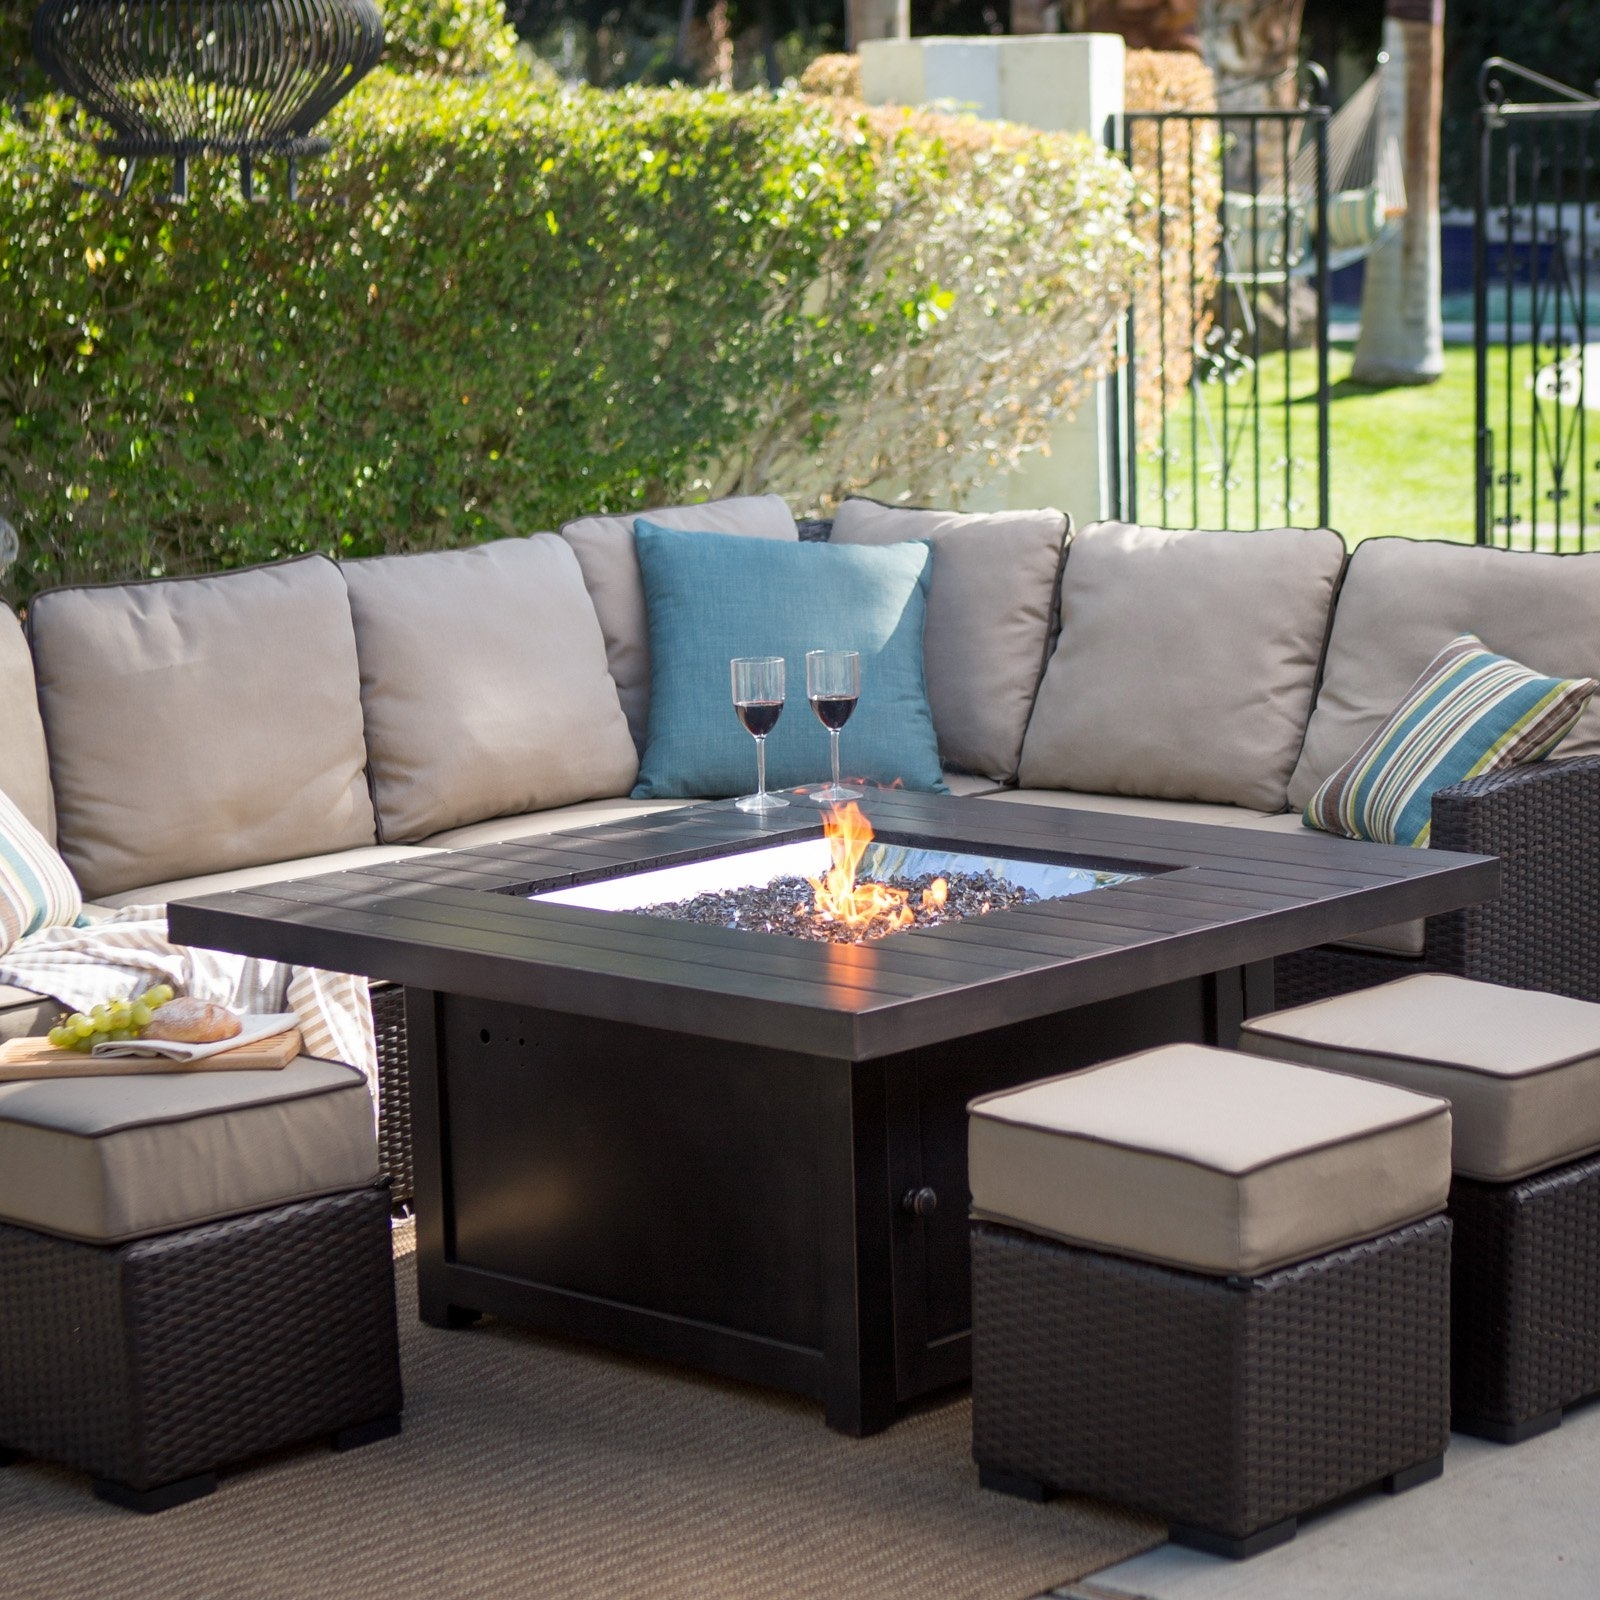 Fashionable Furniture: High Quality Patio Furniture Columbus Ohio And Fire Pit For Conversation Patio Sets With Outdoor Sectionals (View 7 of 15)